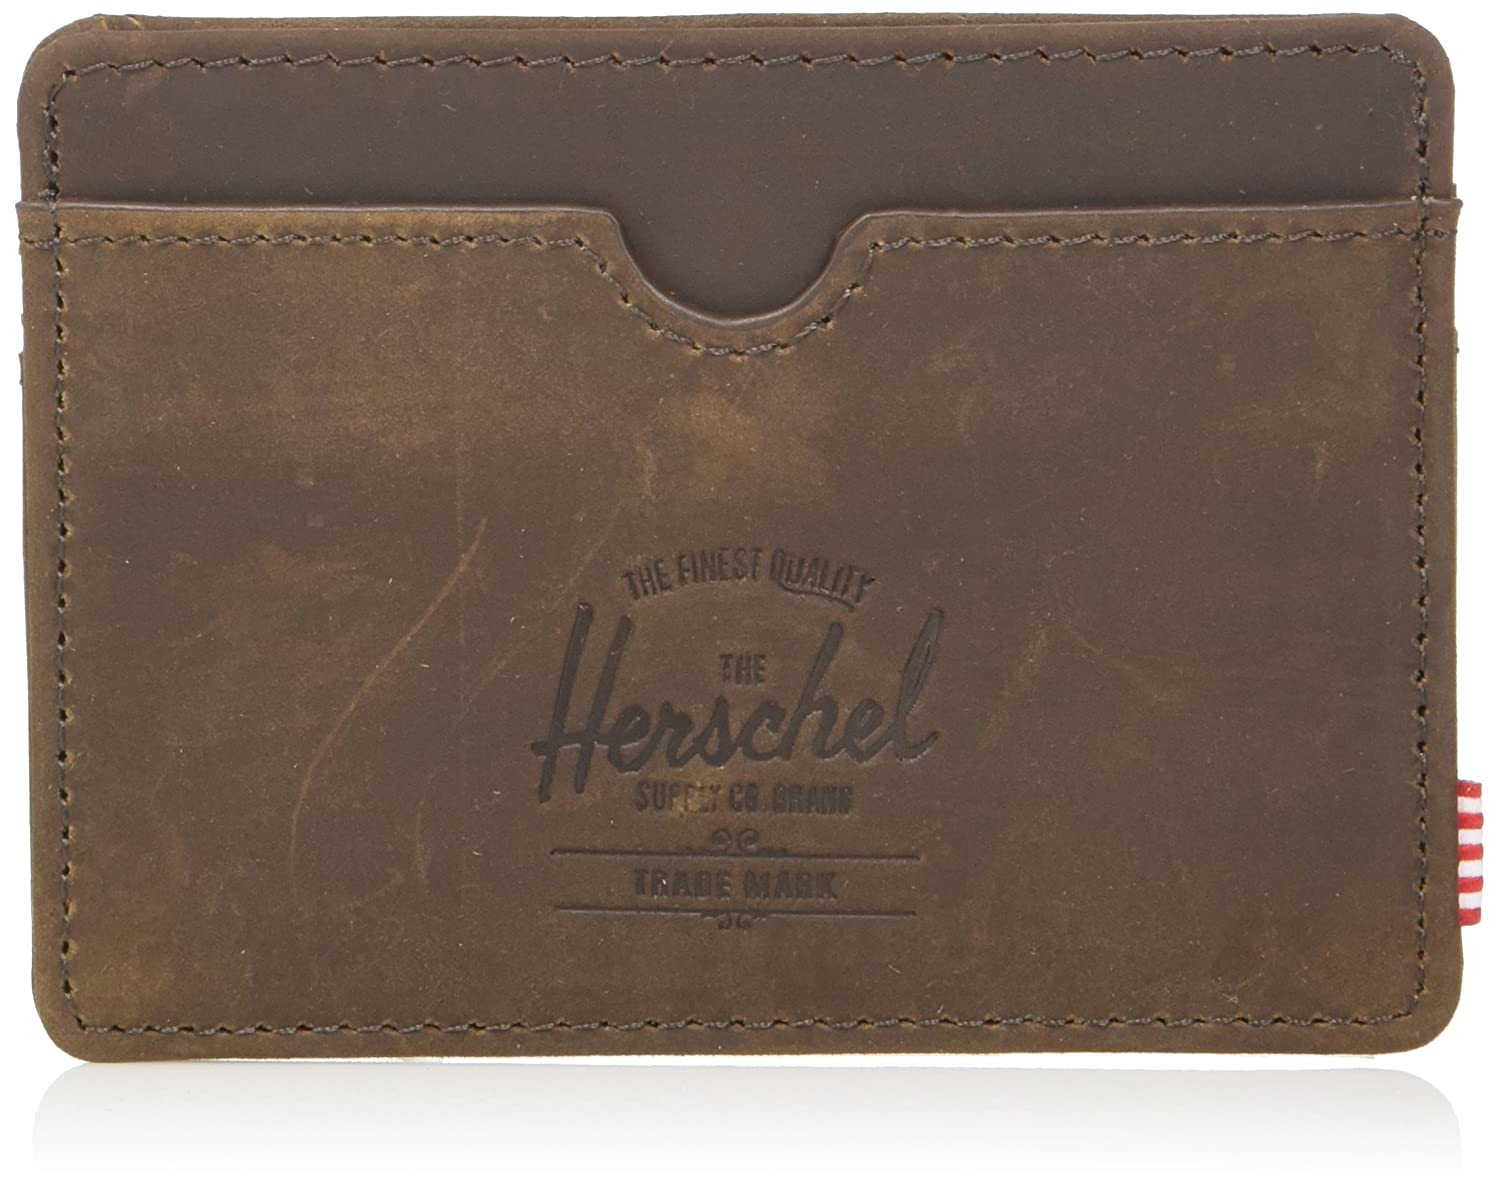 Herschel Credit Card Holder Charlie Leather 3cc RFID Herschel Accessories Cuir I 10360-02233-OS